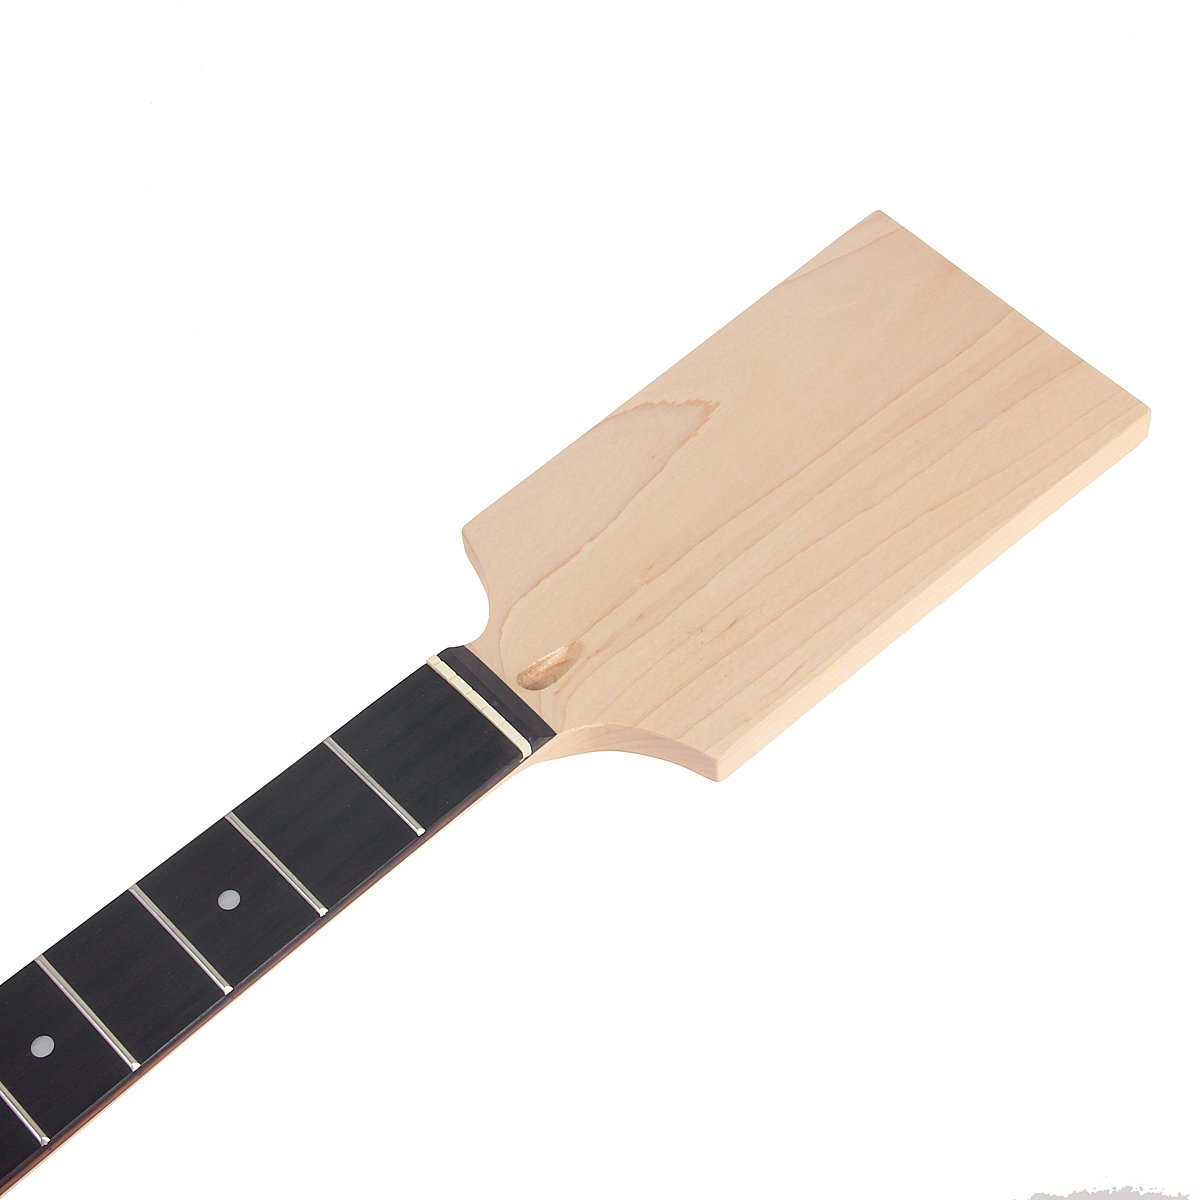 Kmise Unfinished Electric Guitar Neck Paddle Head DIY Parts Clear Satin Maple 22 Frets Fingerboard Bolt On for Music Lover Guitar Repair by Kmise (Image #2)